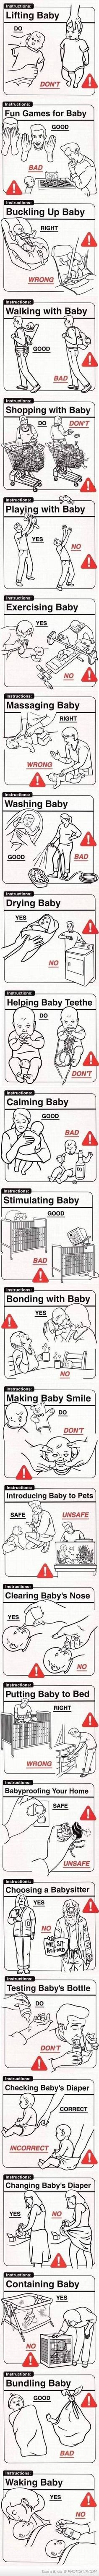 some helpful hints to new parents and babysitters :)